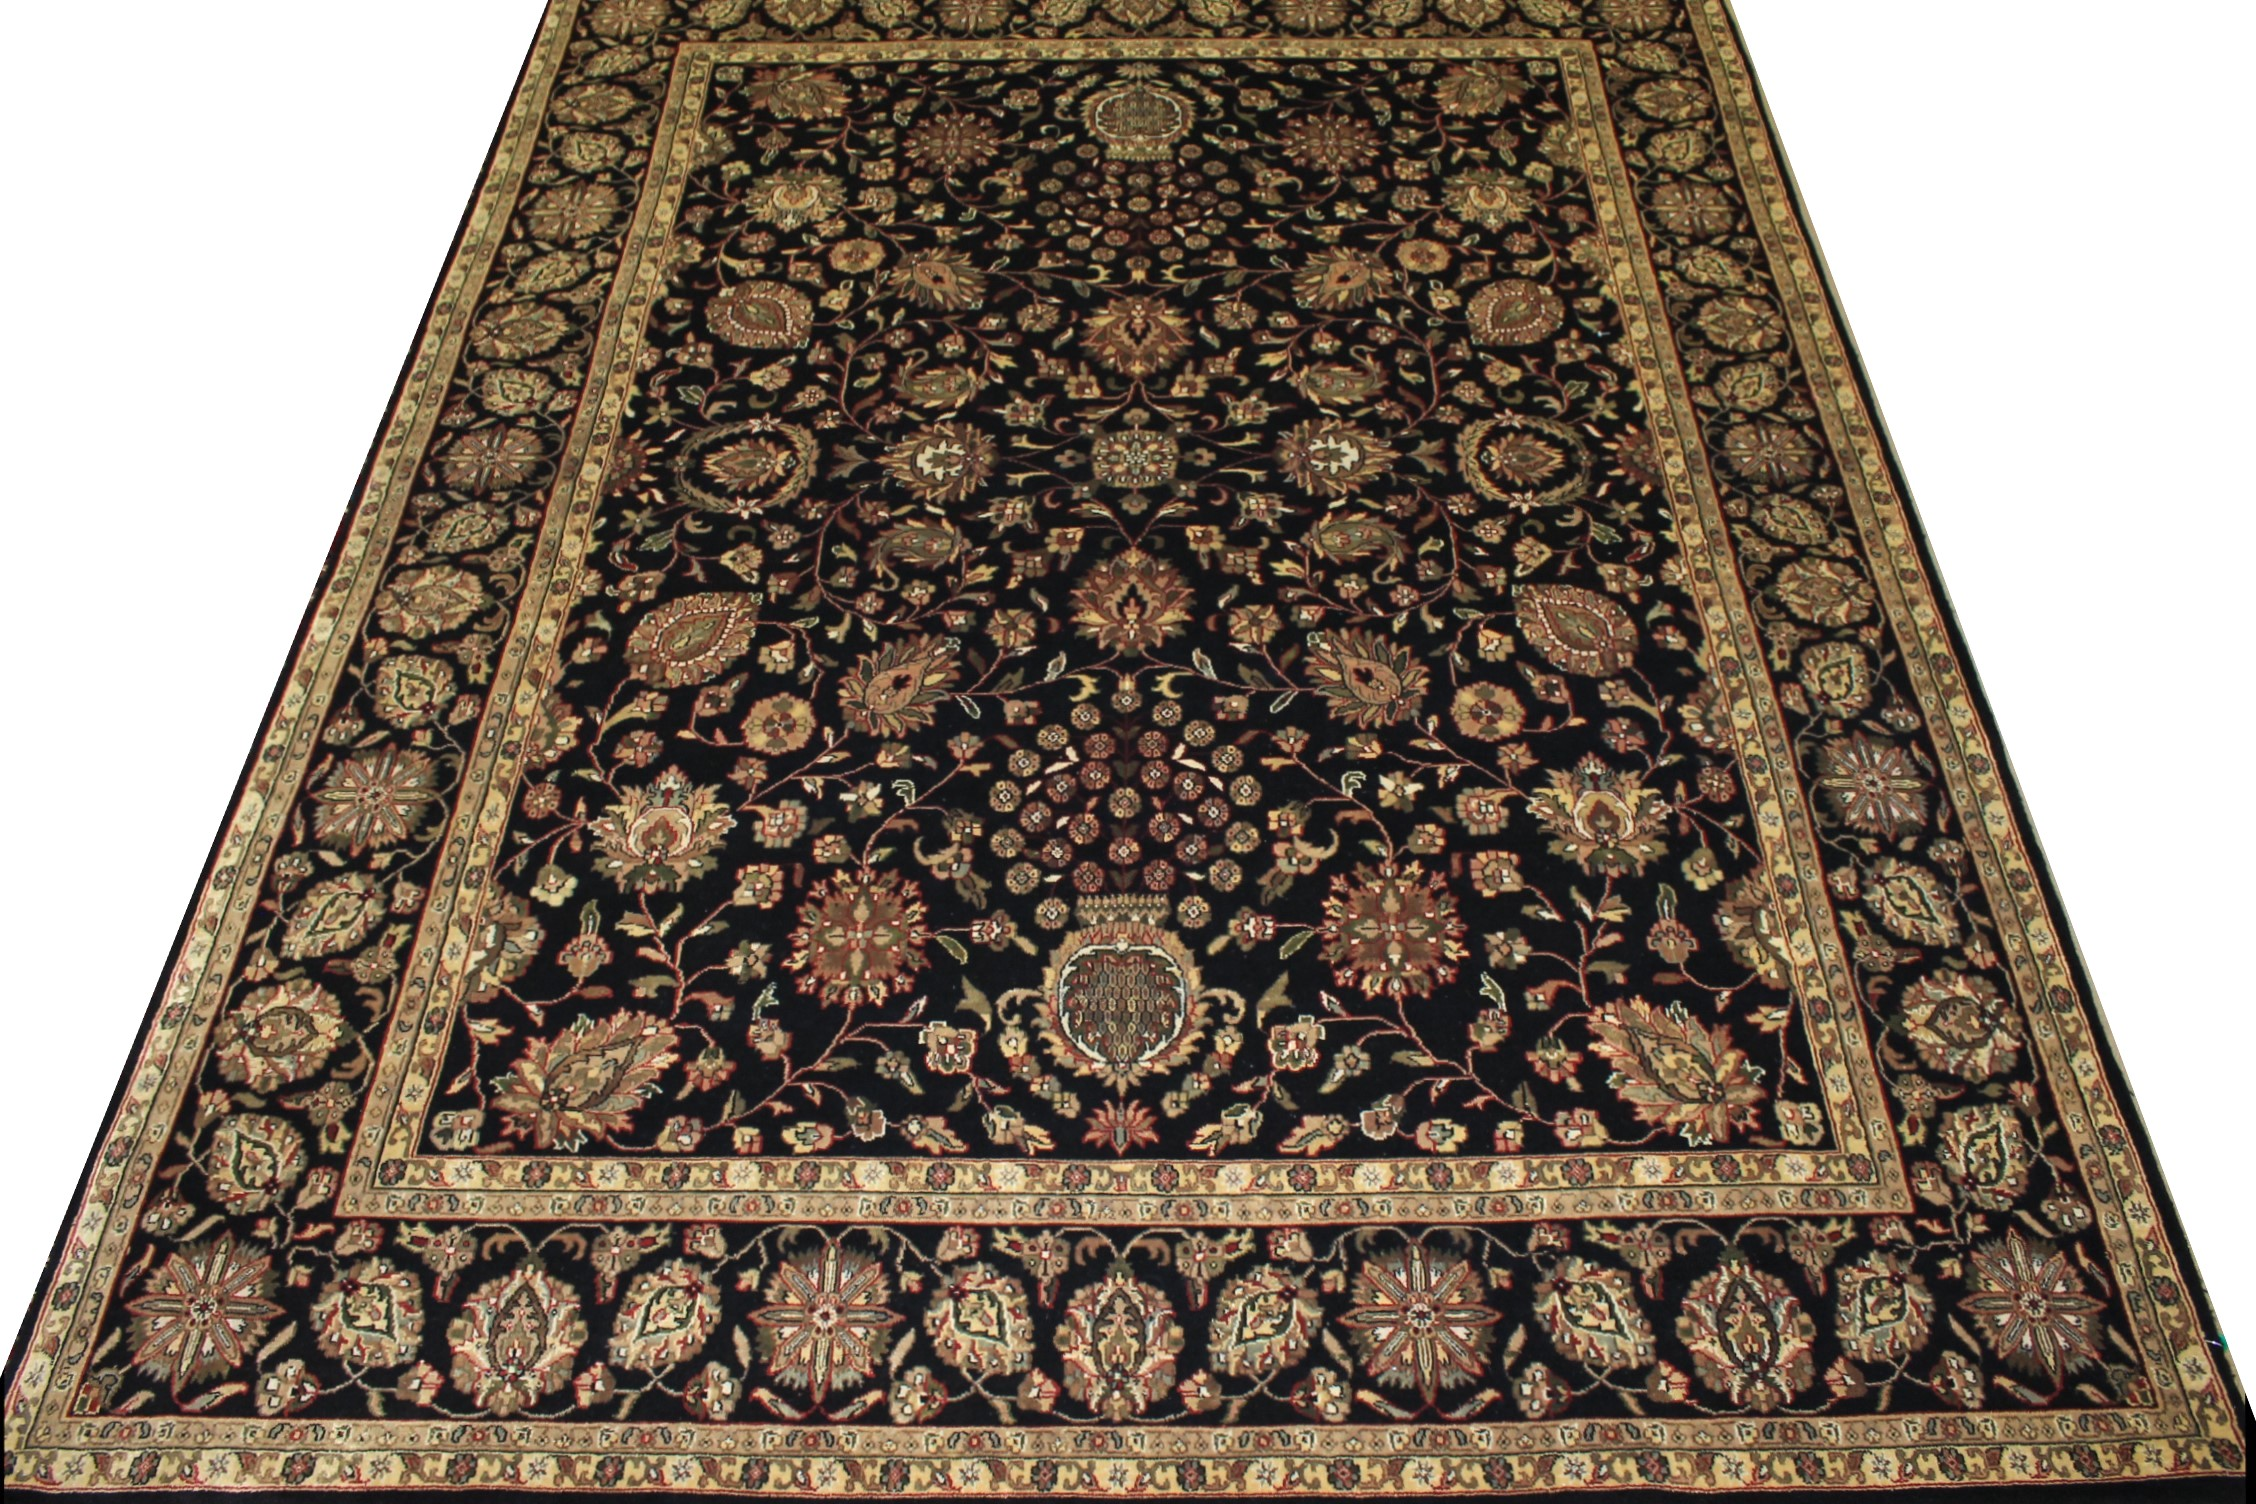 8x10 Traditional Hand Knotted Wool Area Rug - MR12888